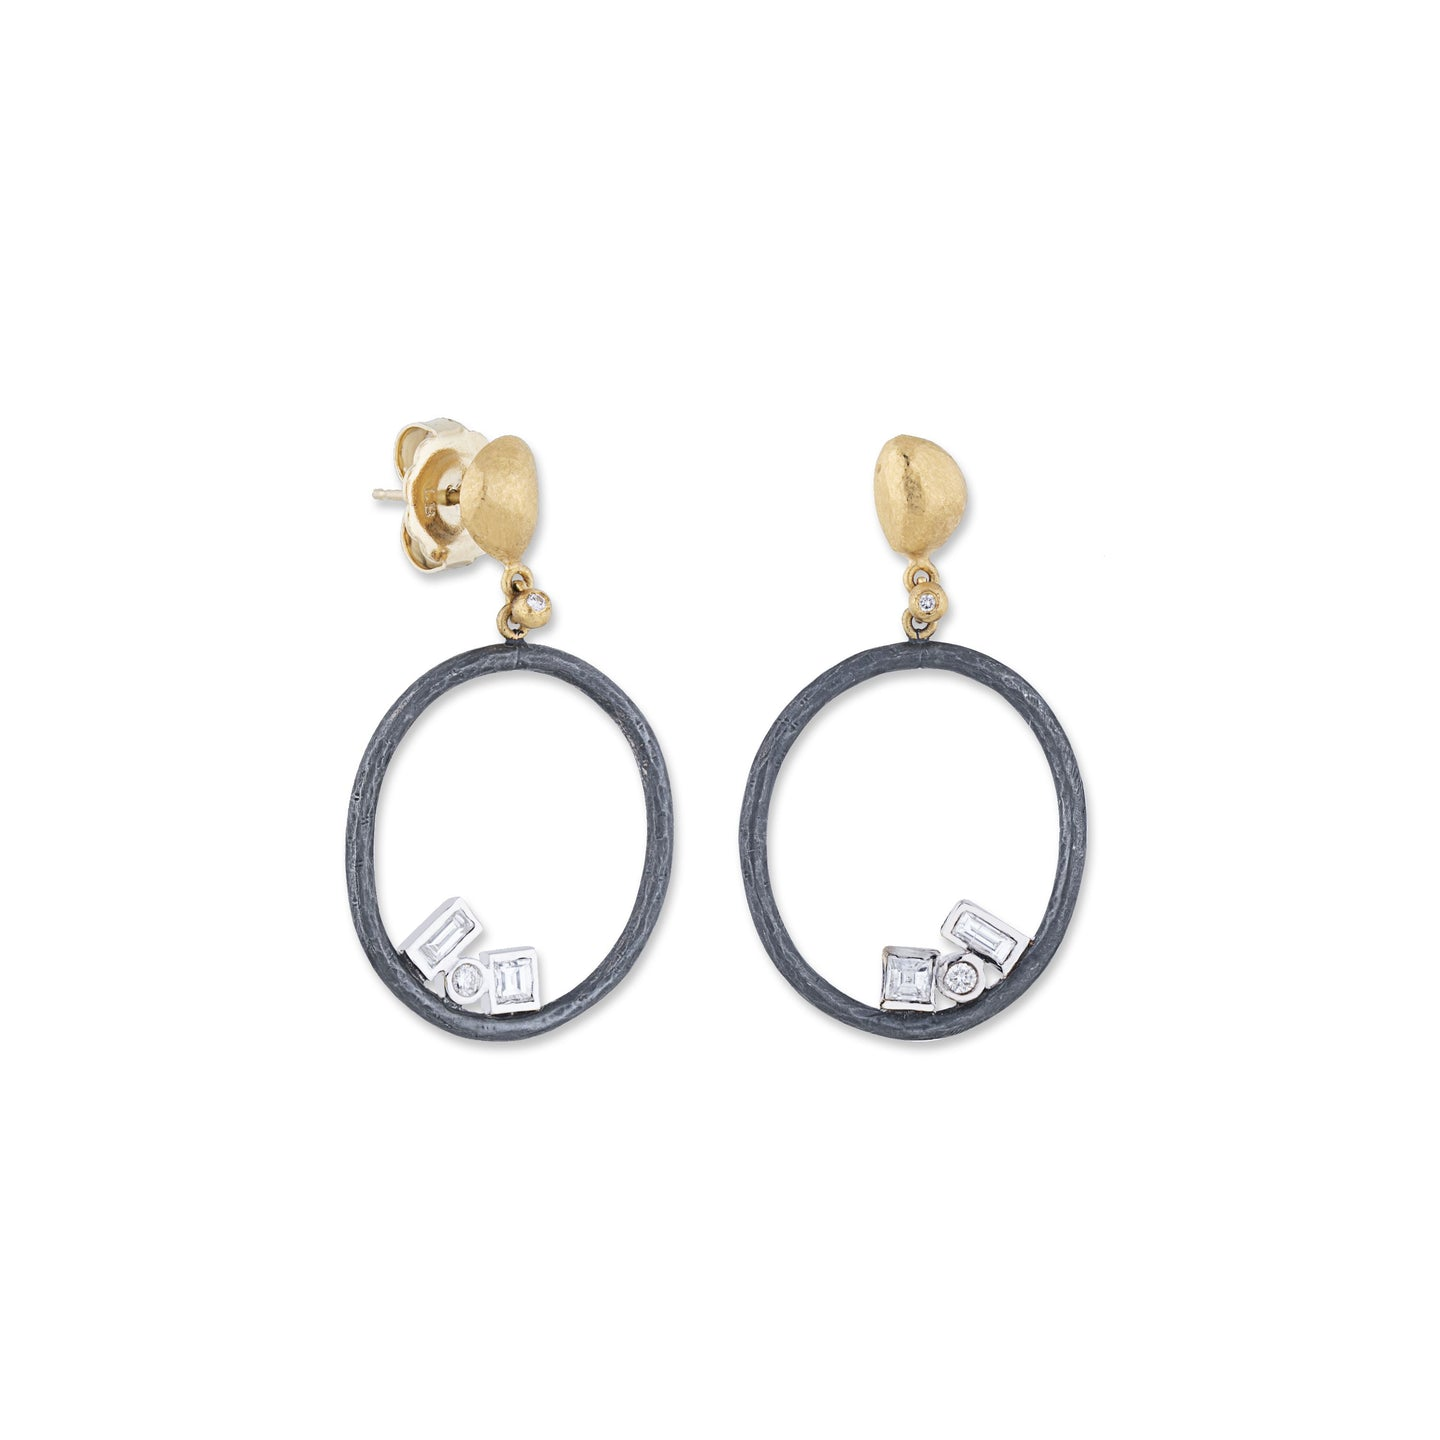 Lika Behar Open Round Earrings